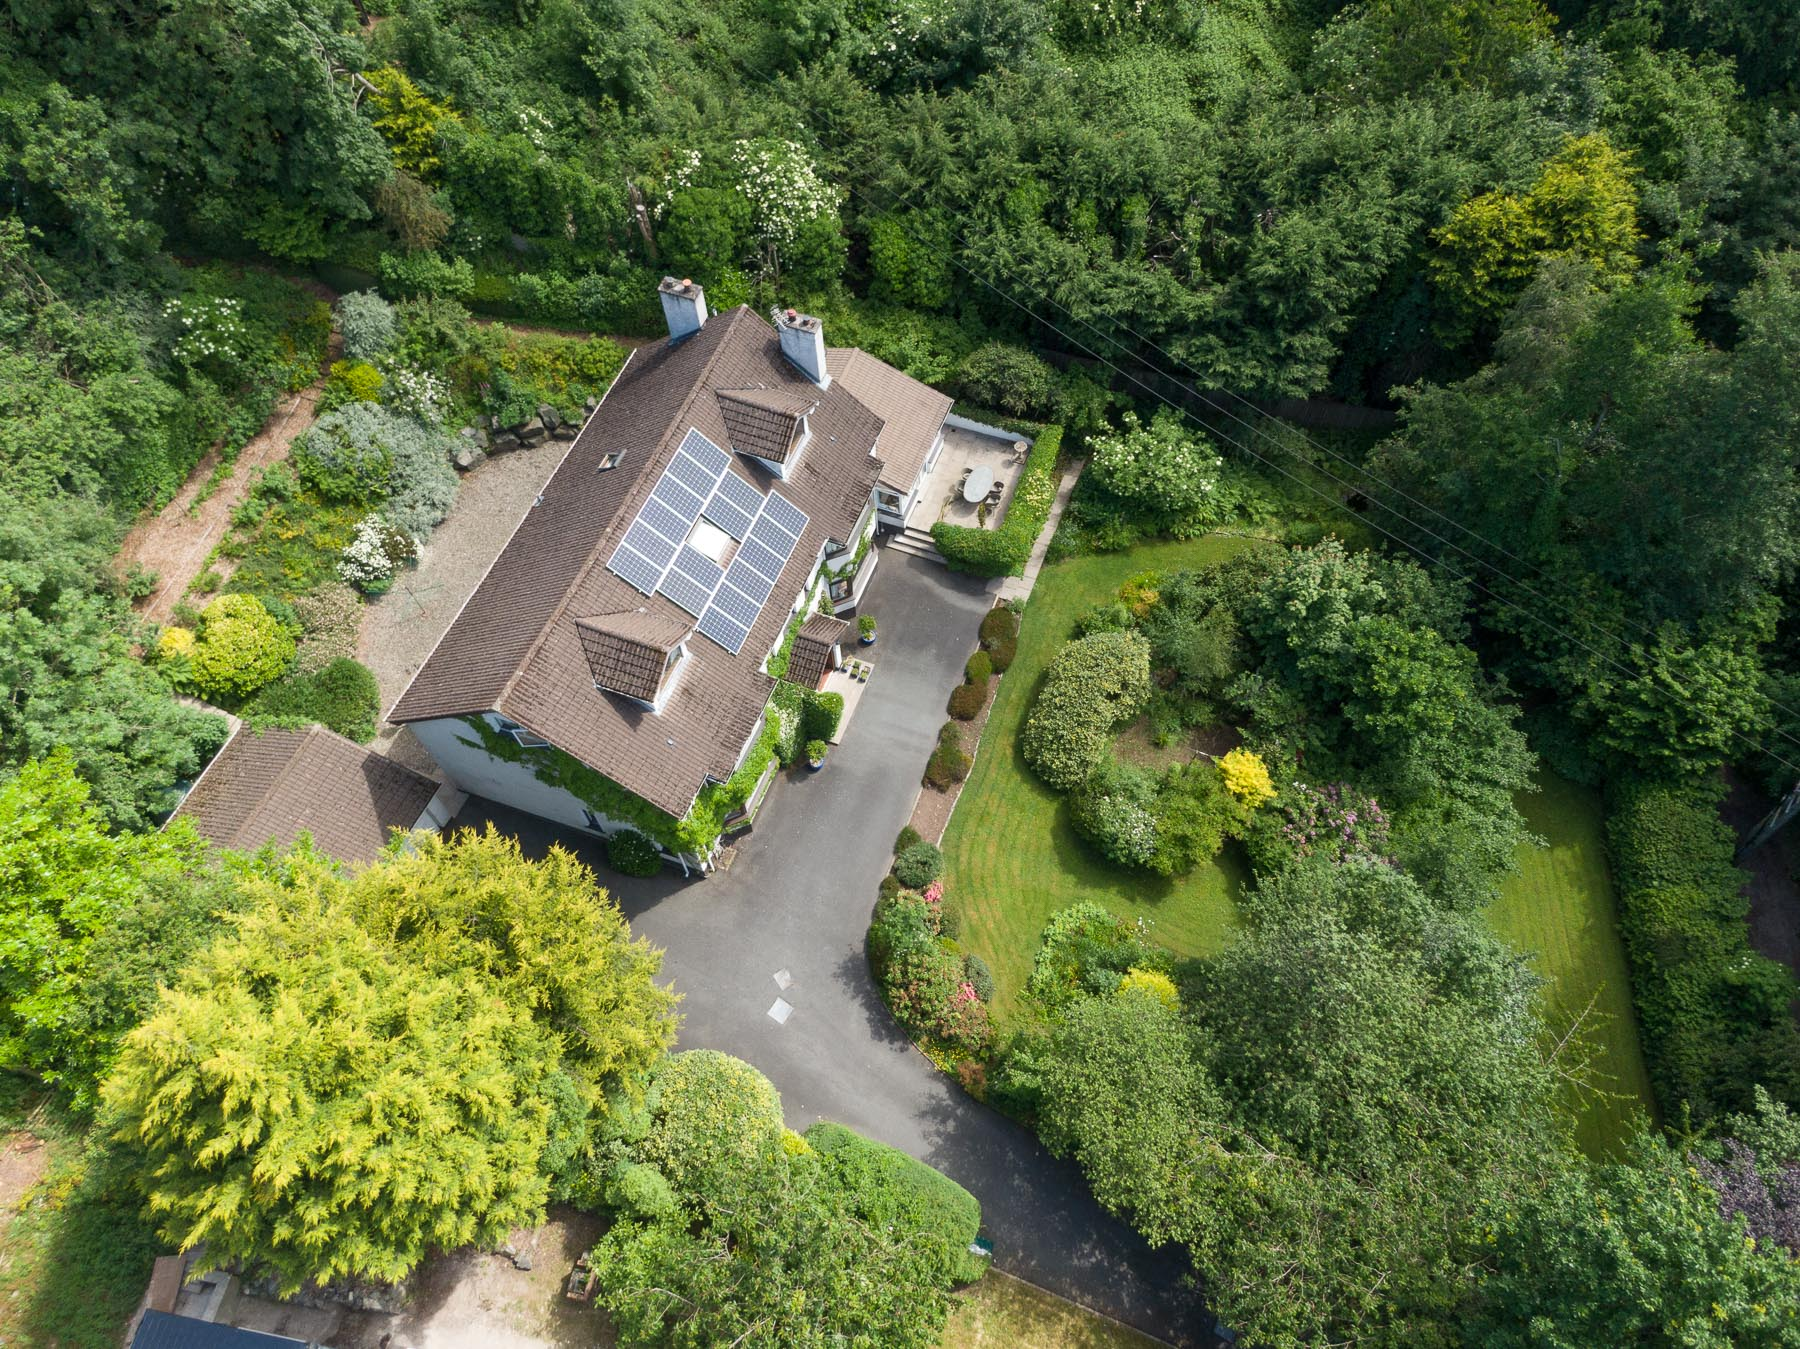 Aerial drone photography and video production services Dublin and Ireland portfolio - residential photography of Glenside, Northern Ireland. Photo 0001